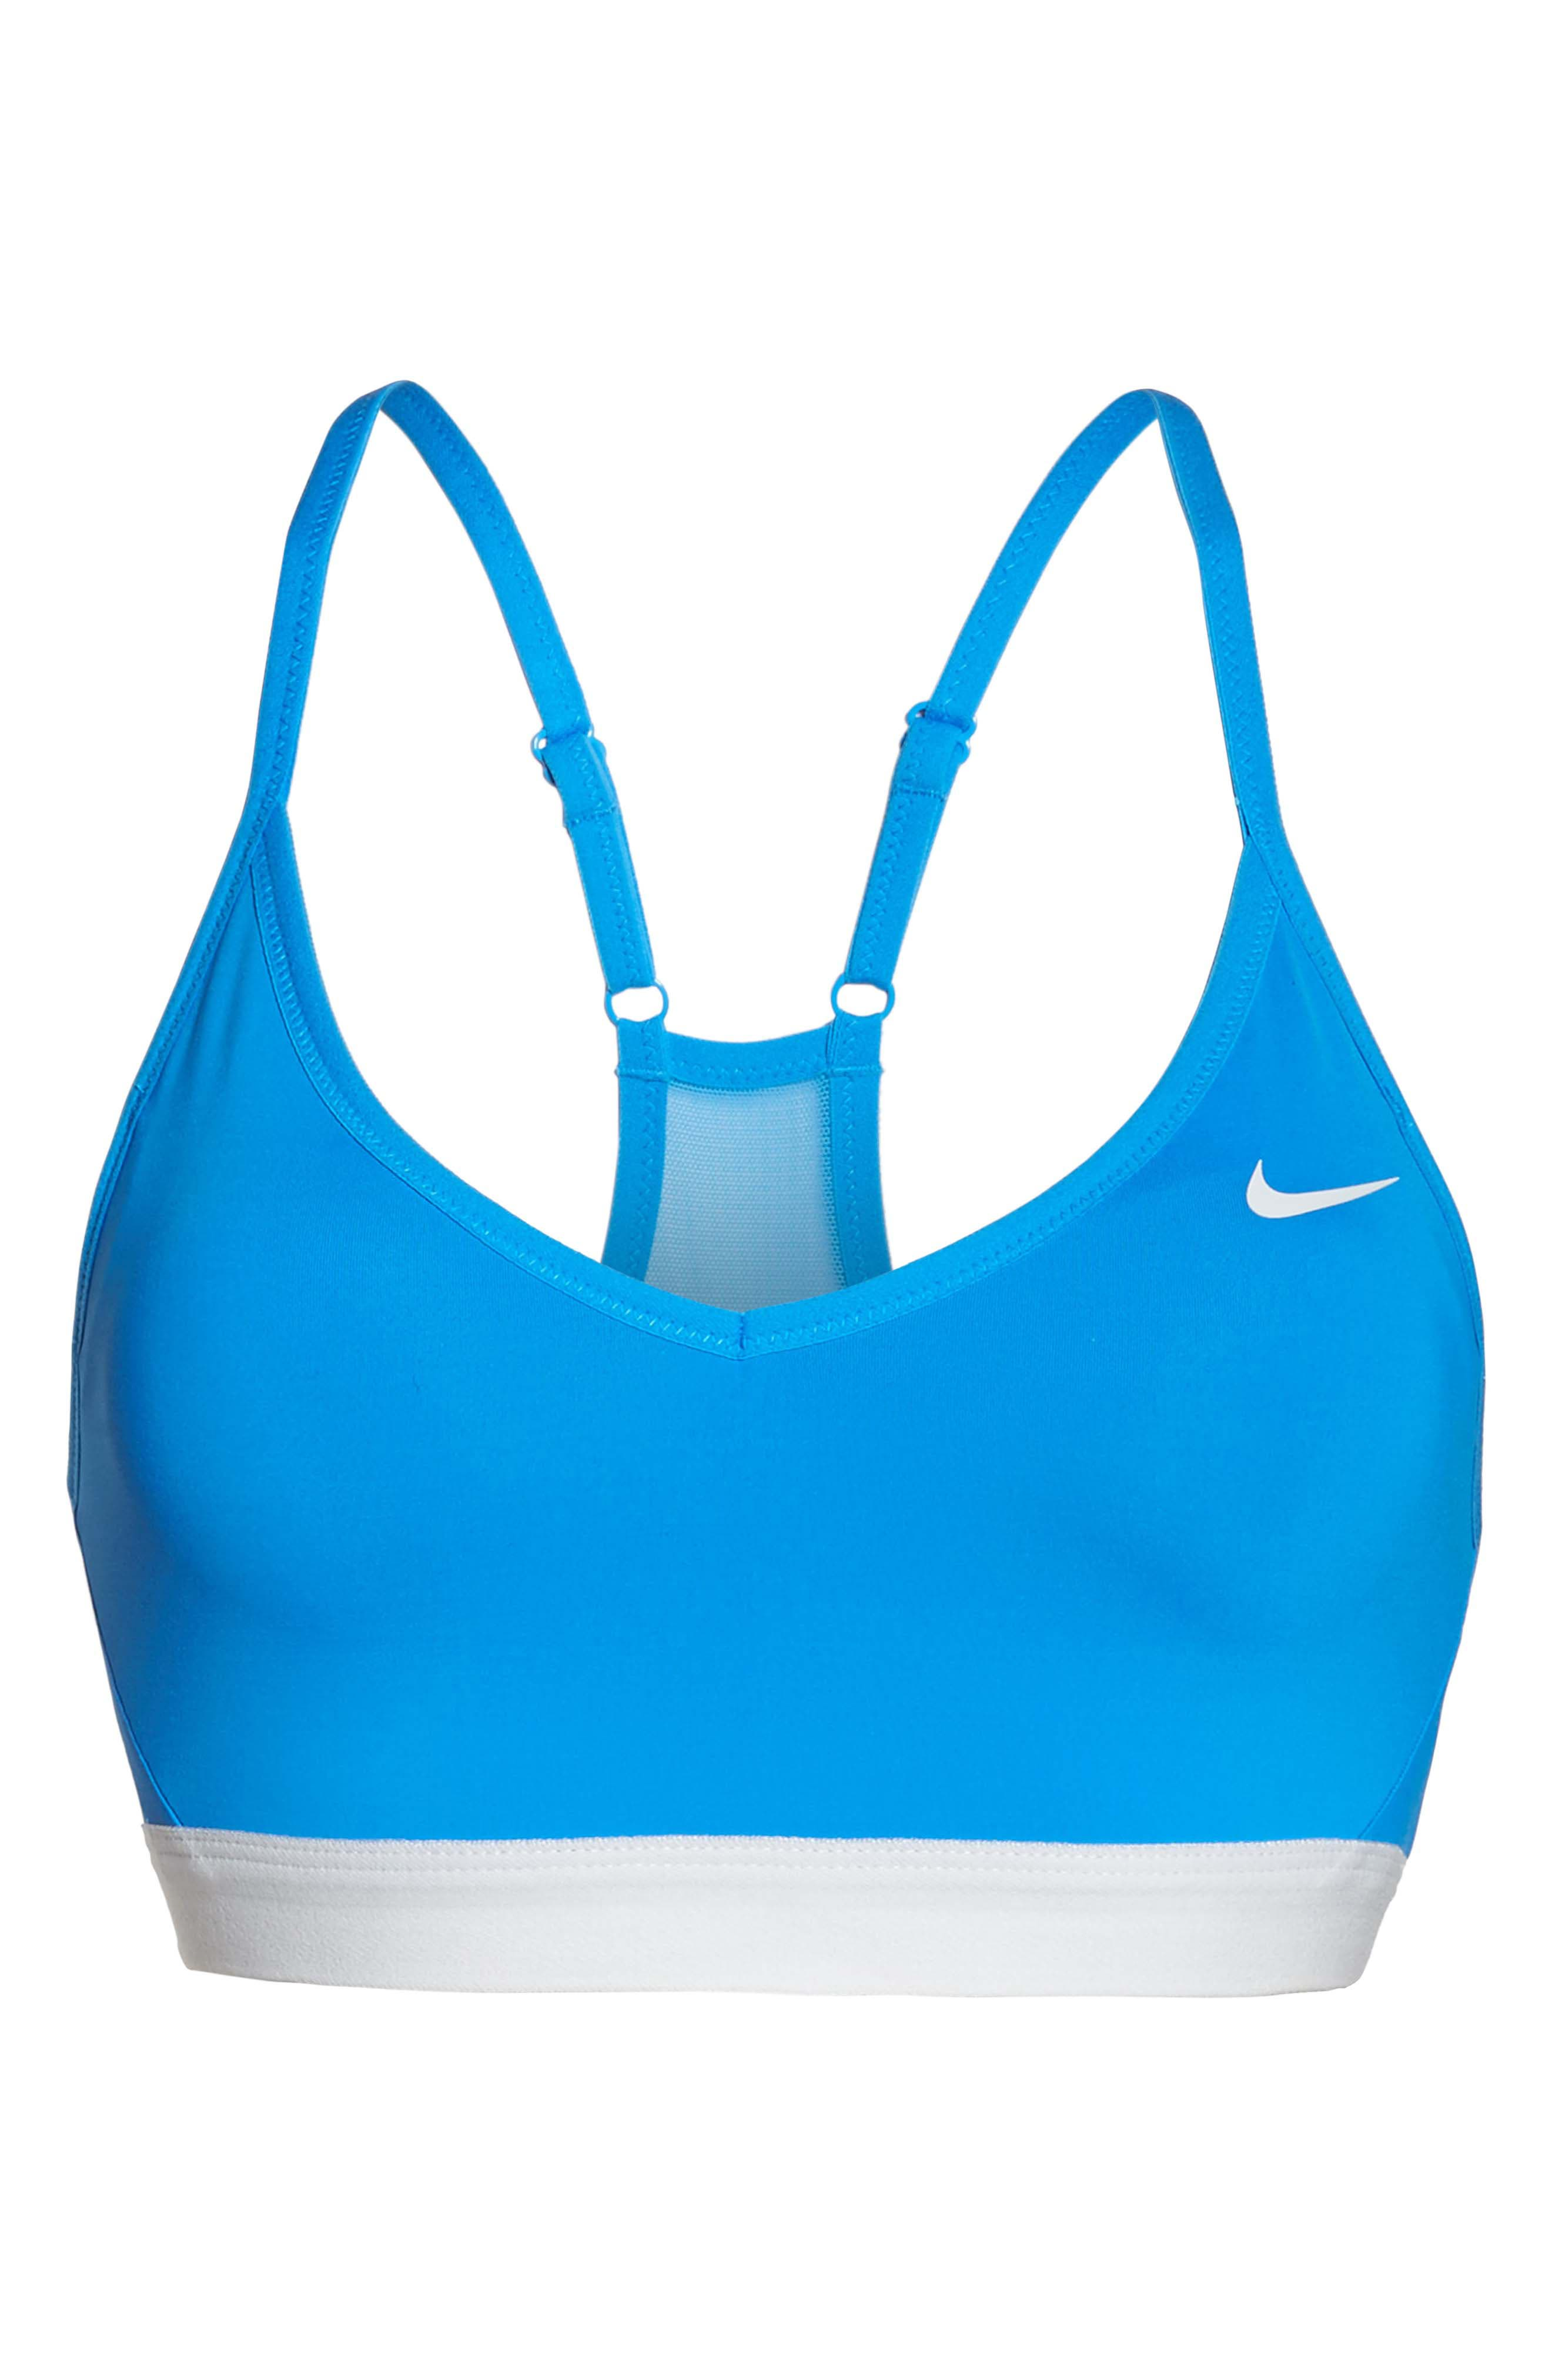 Pro Indy Dry Sports Bra,                         Main,                         color, 437